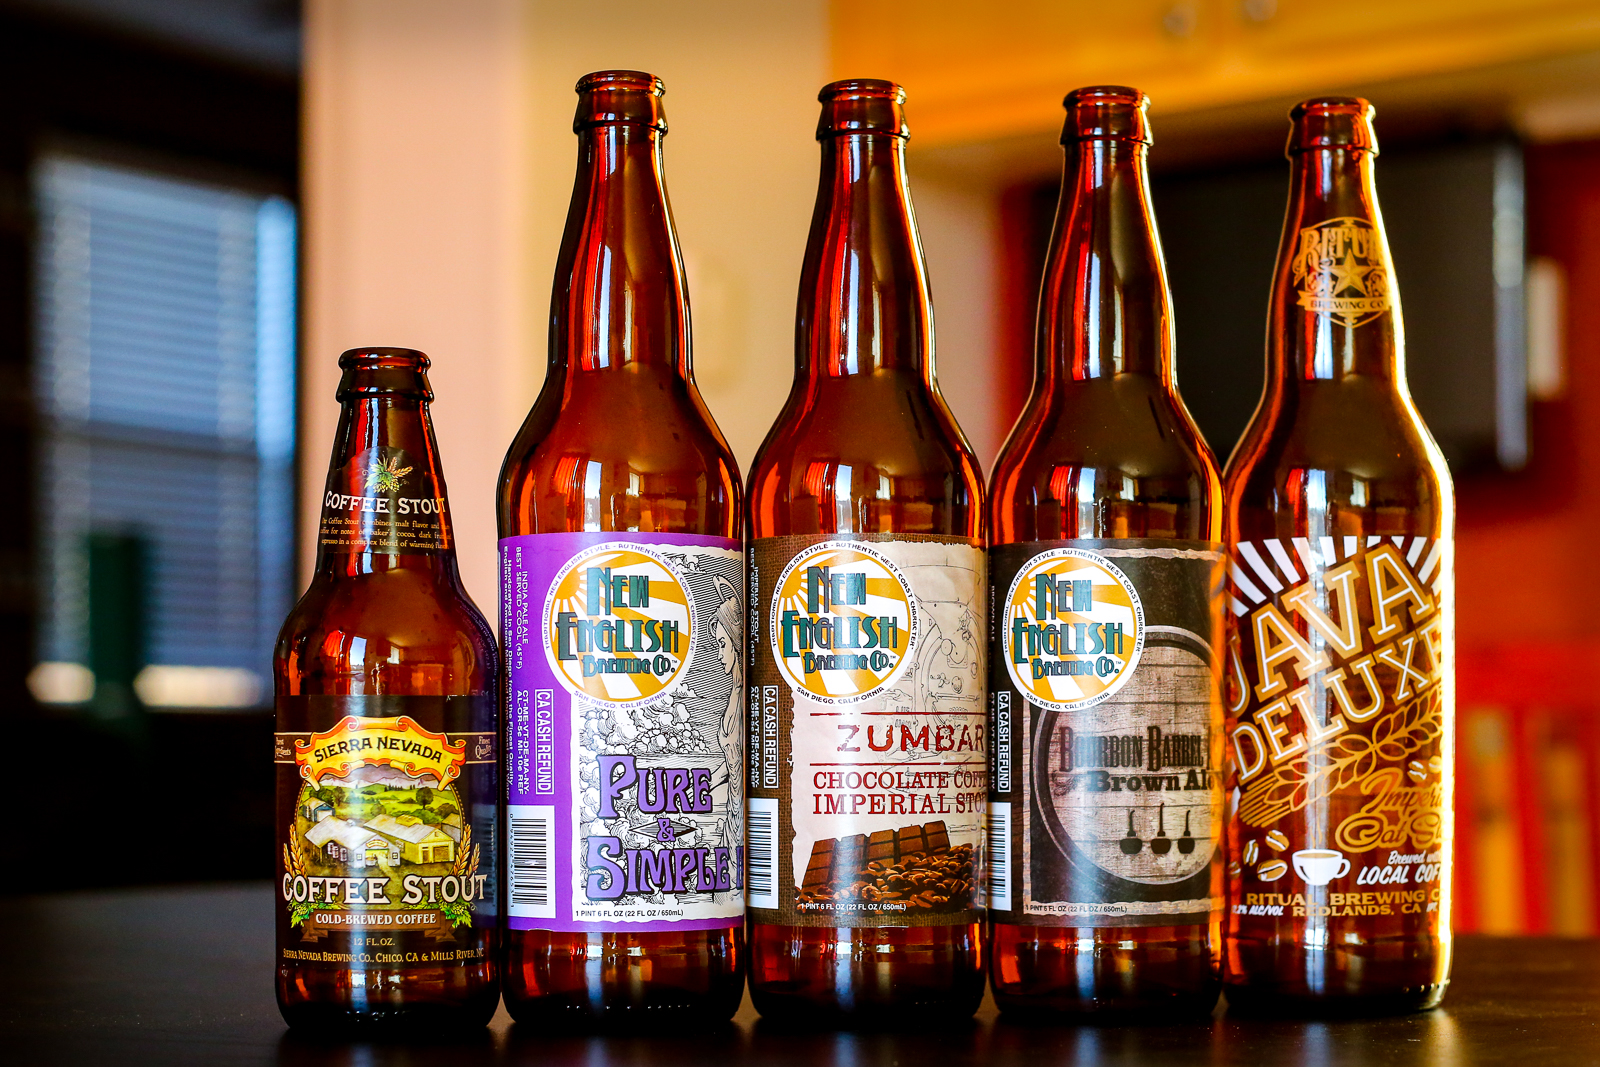 Beers from New English, Ritual Brewing, and Sierra Nevada